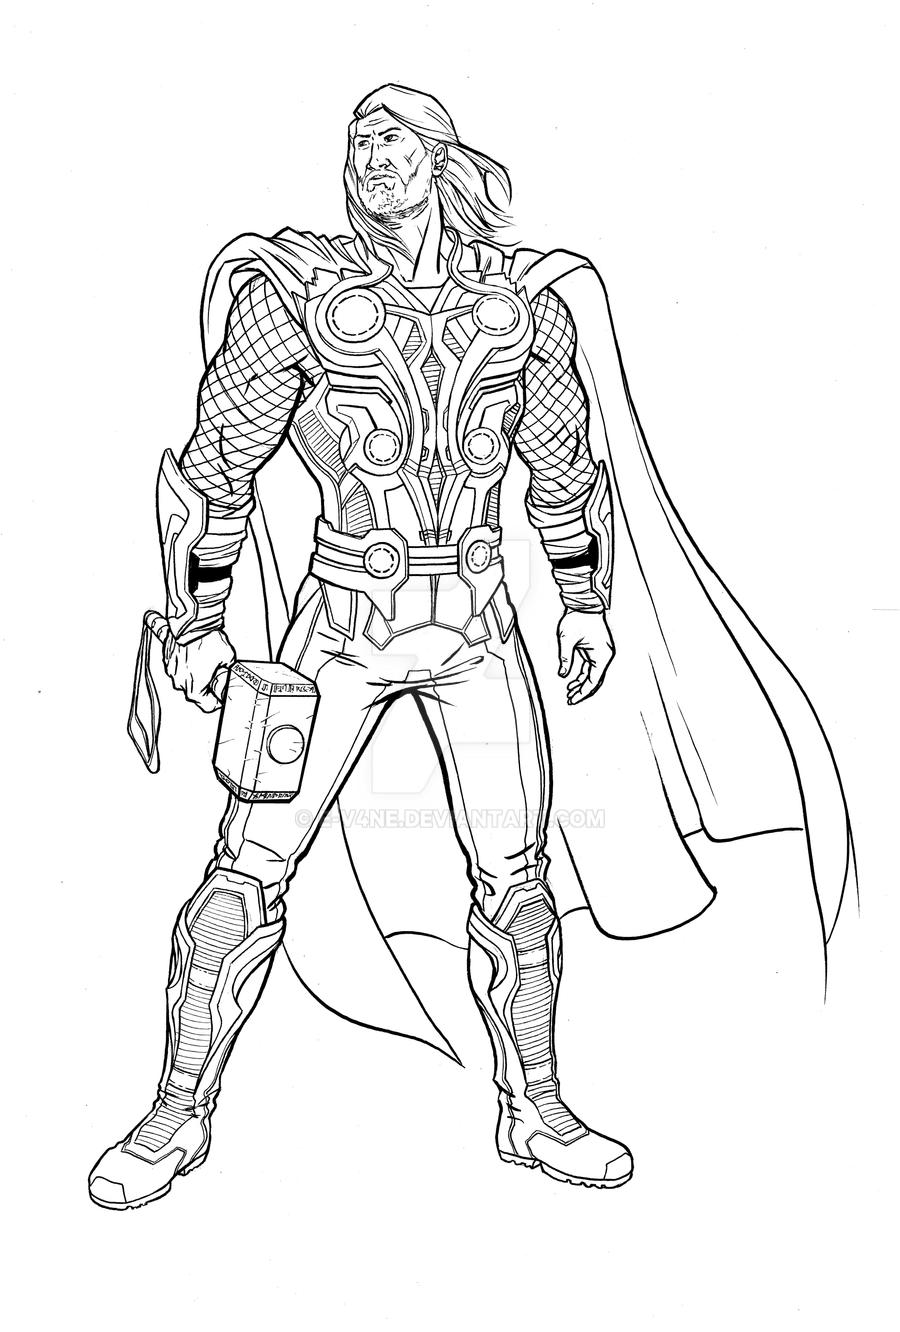 Mighty Avengers Coloring Pages : Thor thursday the mighty avenger by e v ne on deviantart